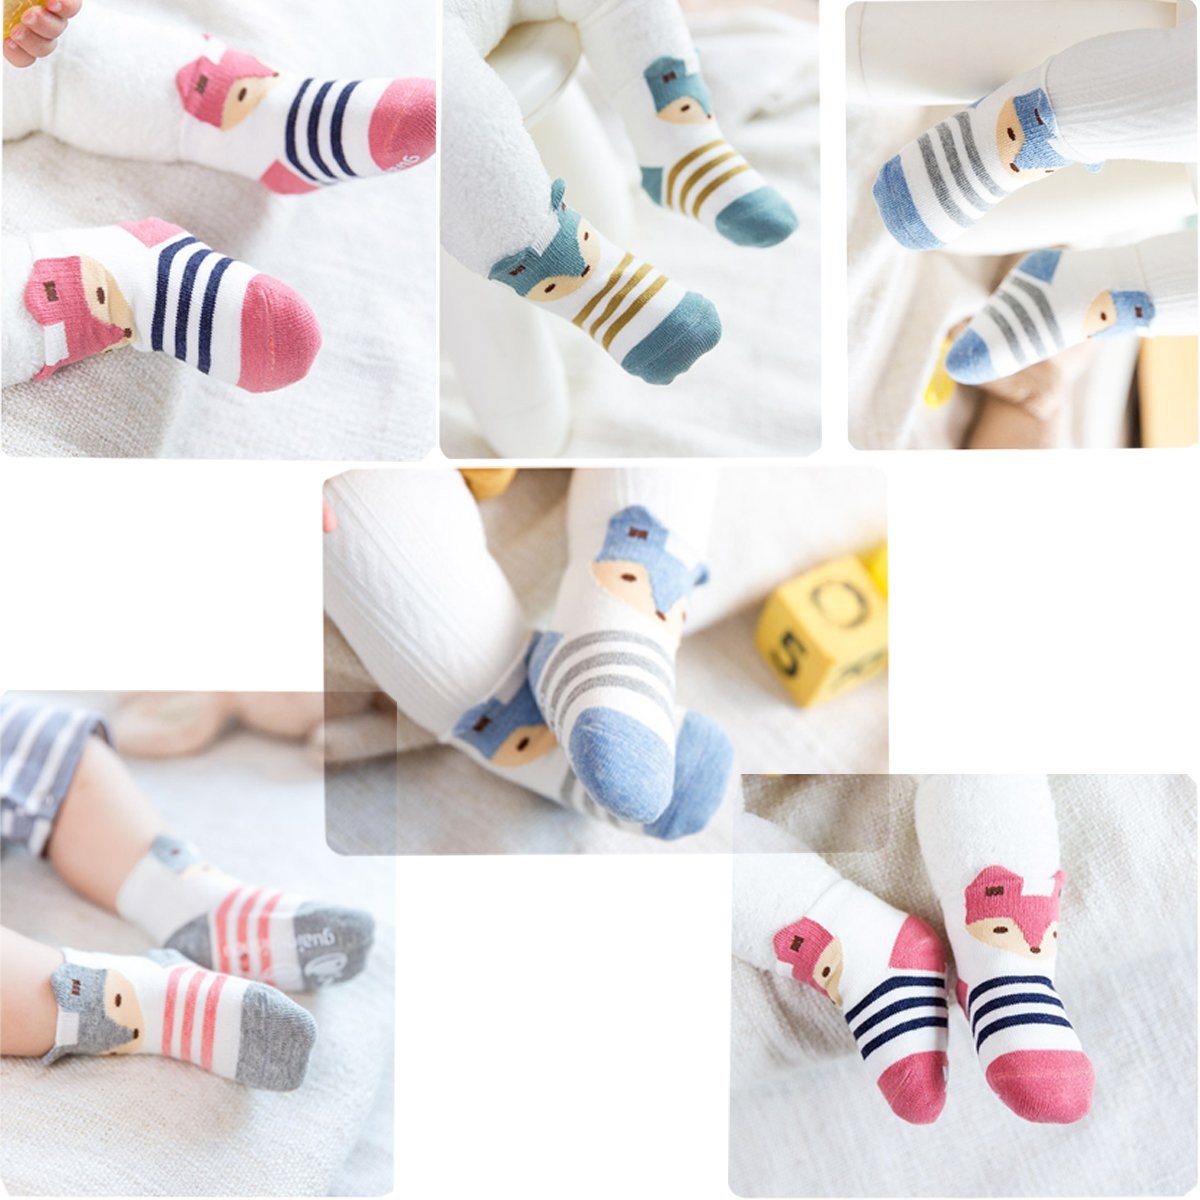 Fairy 5 Pairs Cartoon Cute Animals Fox Non Skid Cotton Baby Socks Stripes Socks (12 - 24 Months) by Fairy Socks (Image #2)